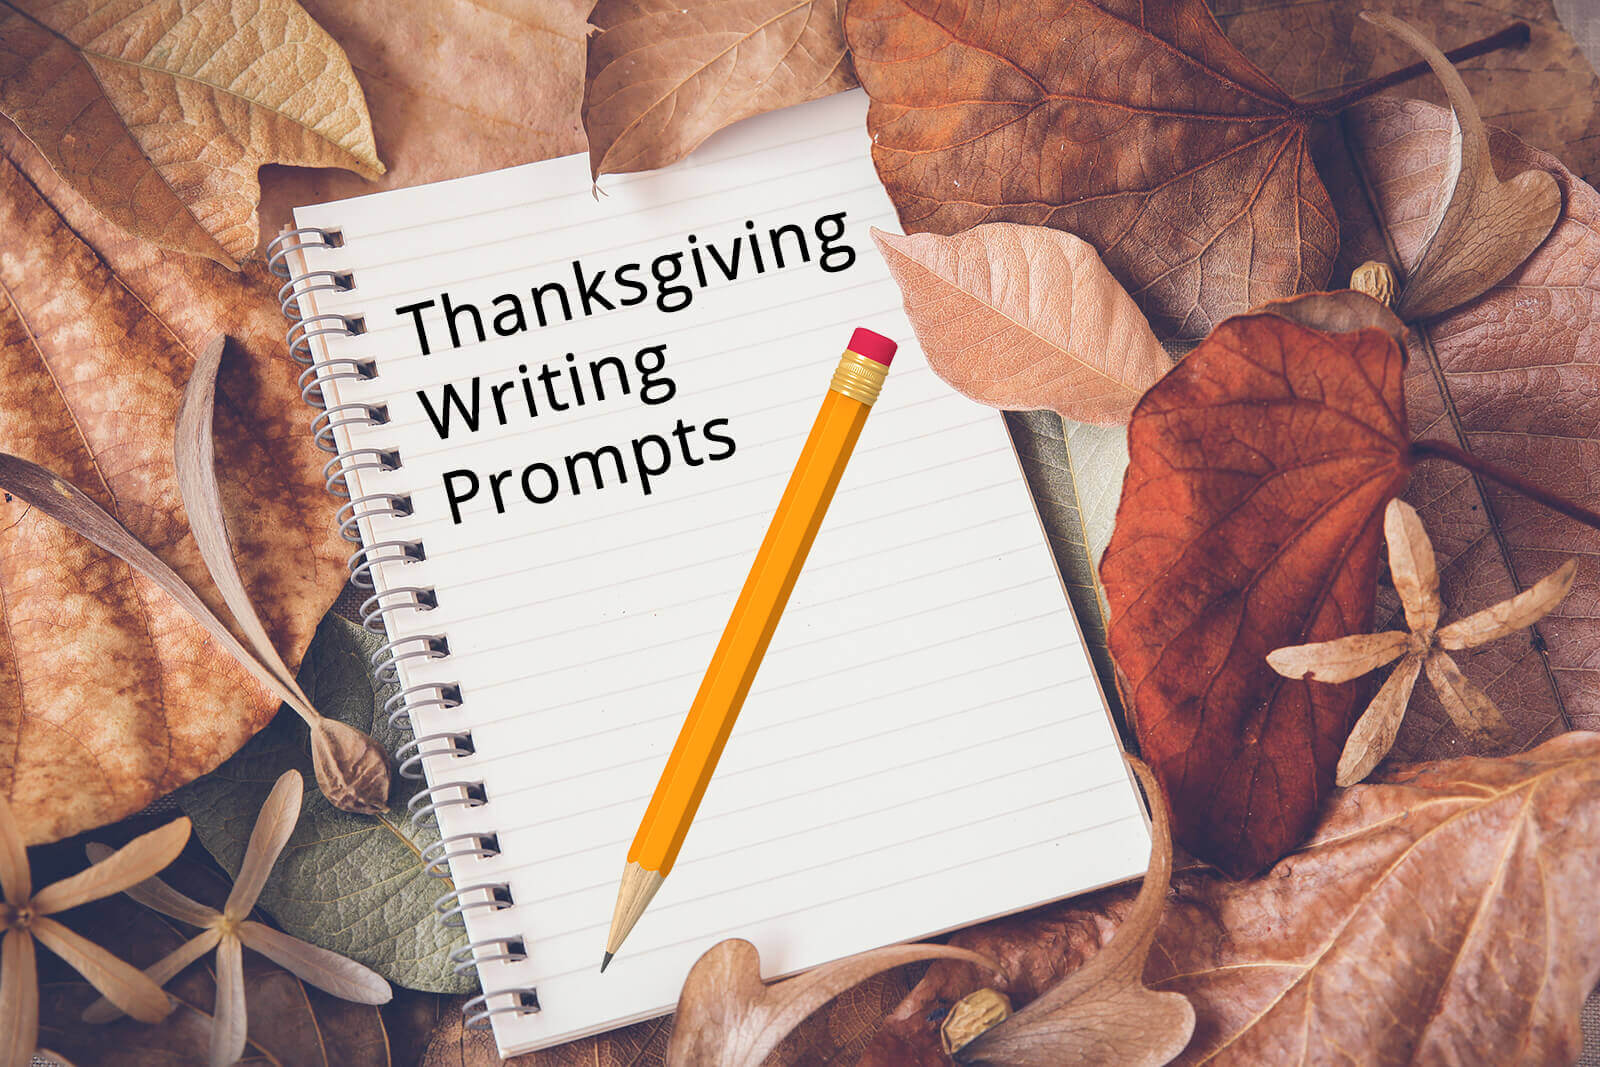 Classroom Handout Ideas ~ Thanksgiving writing prompts resources surfnetkids